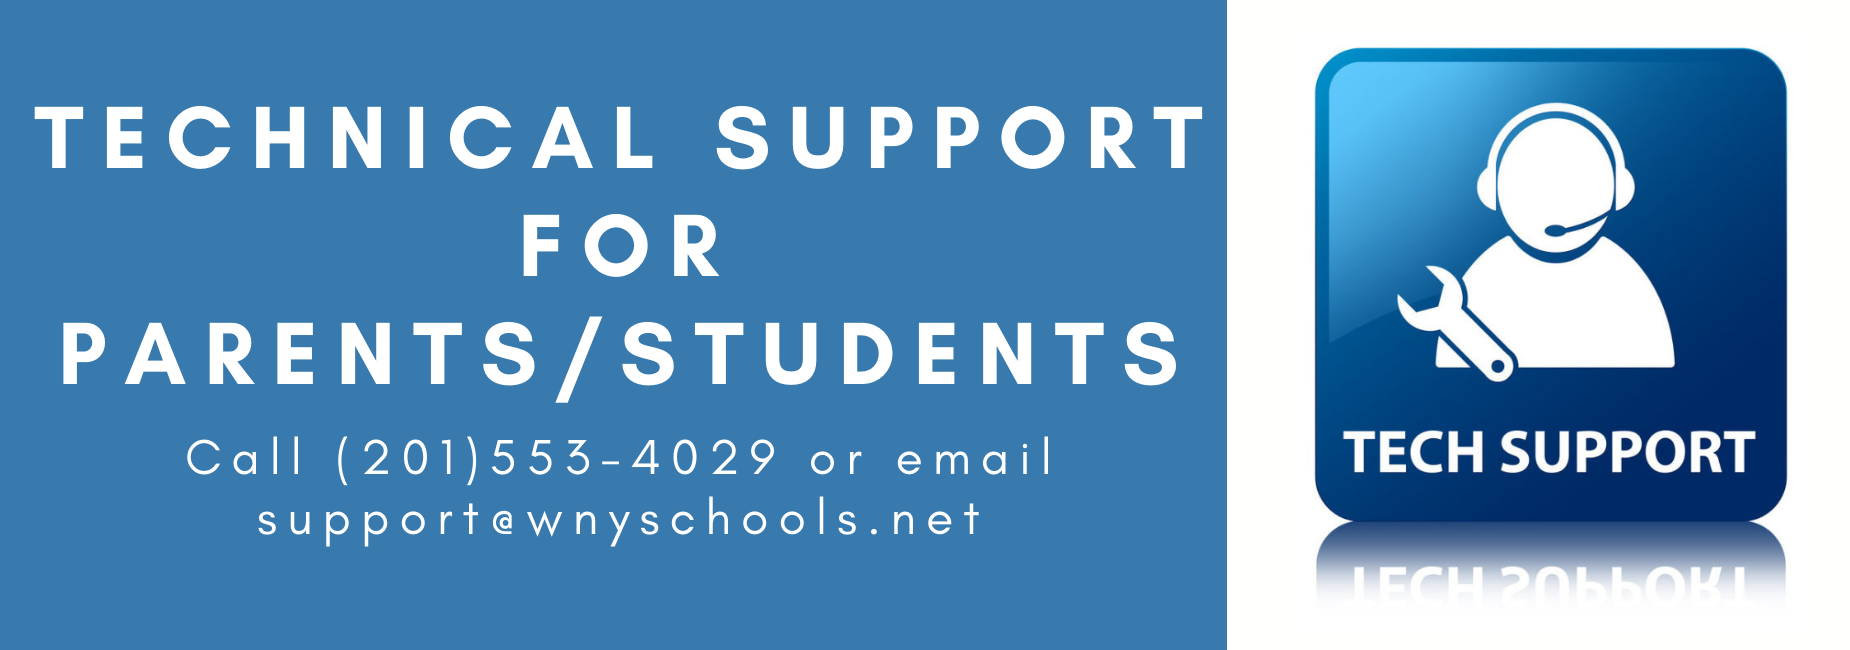 Tech Support for Parents/Students